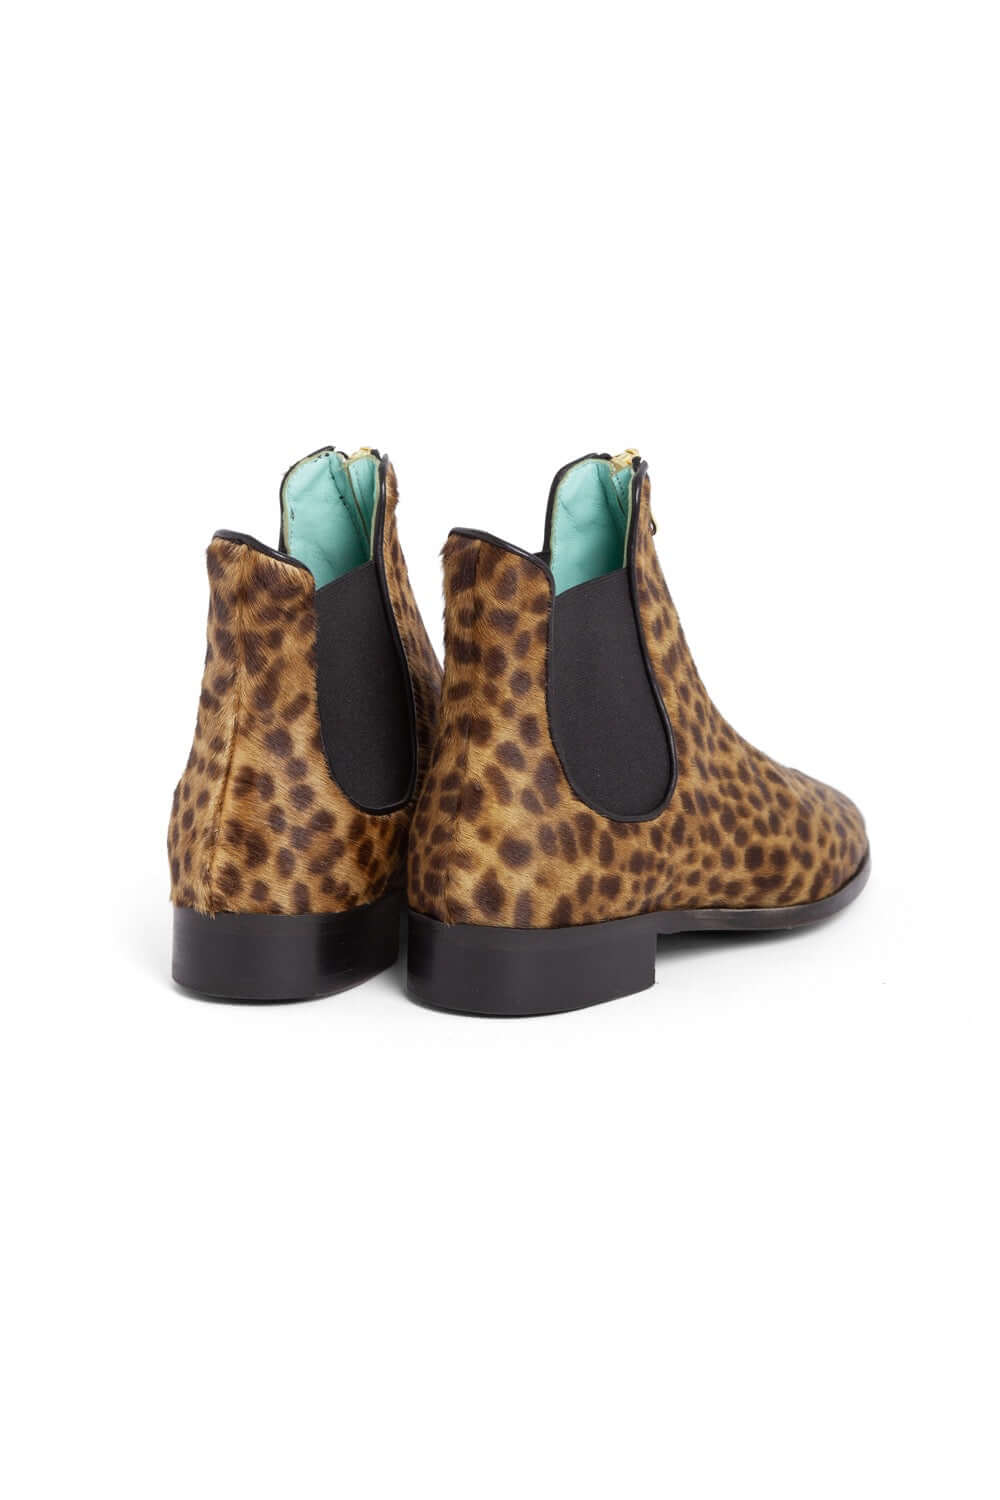 Duchesse boots in leopard printed leather